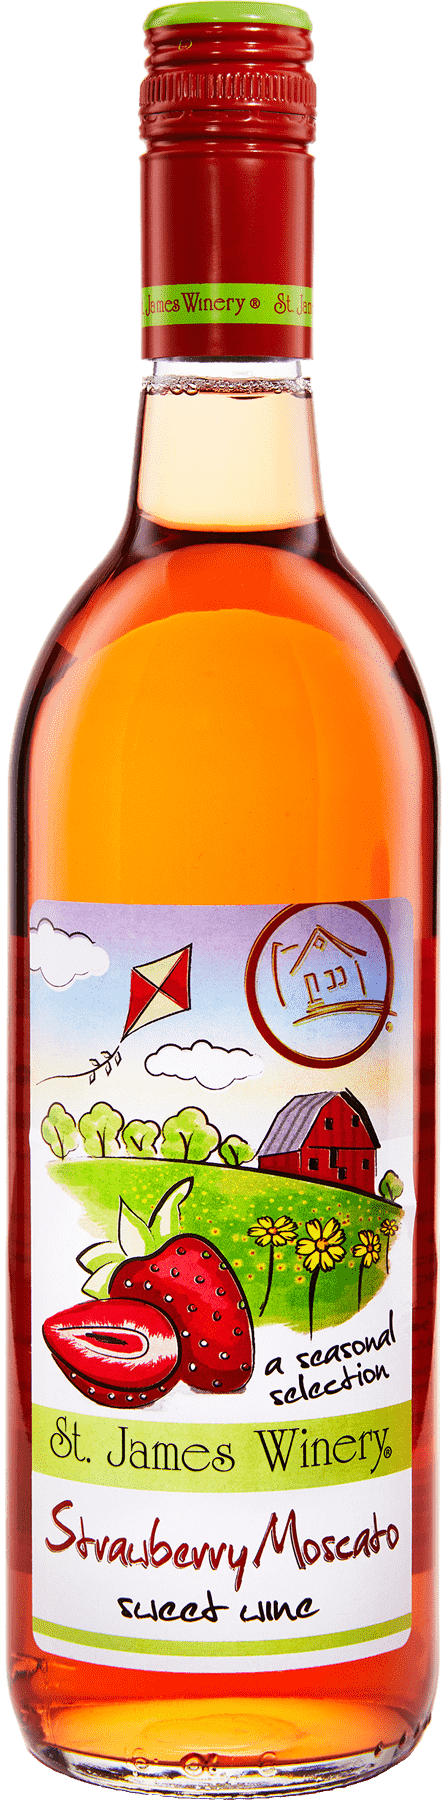 Strawberry Moscato Sweet Wine - St. James Winery Missouri